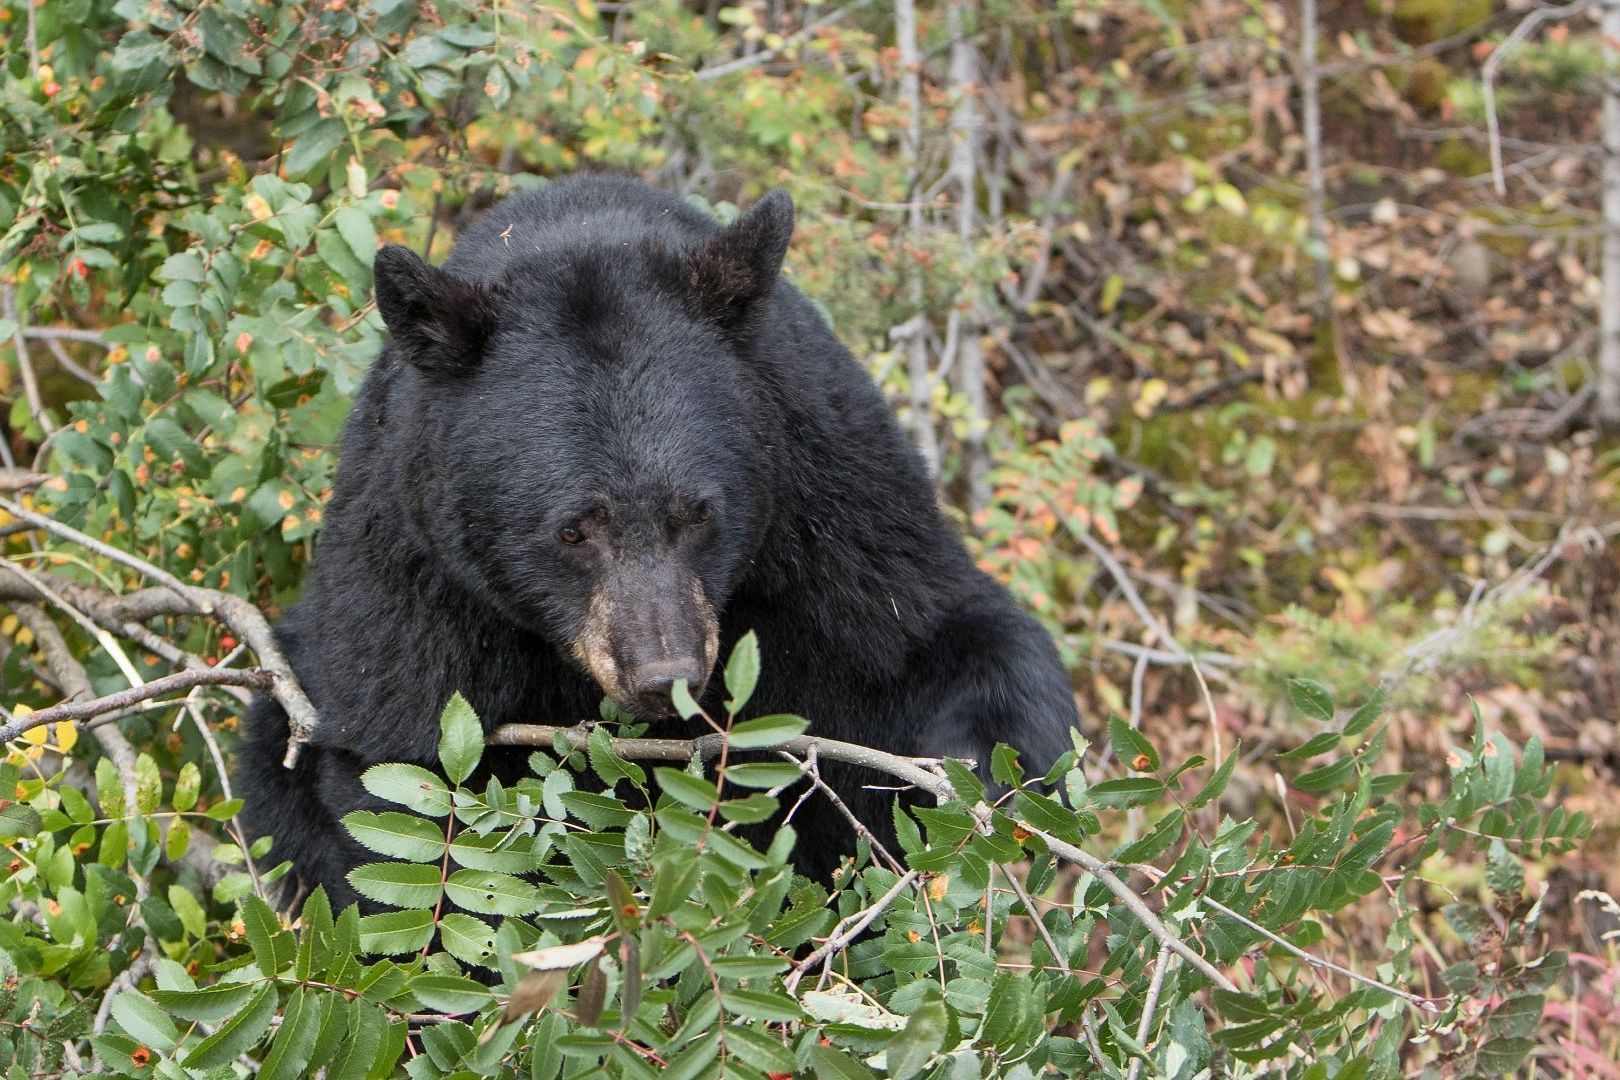 Virginia Bear Locks Himself in SUV, Honks to Alert Owner